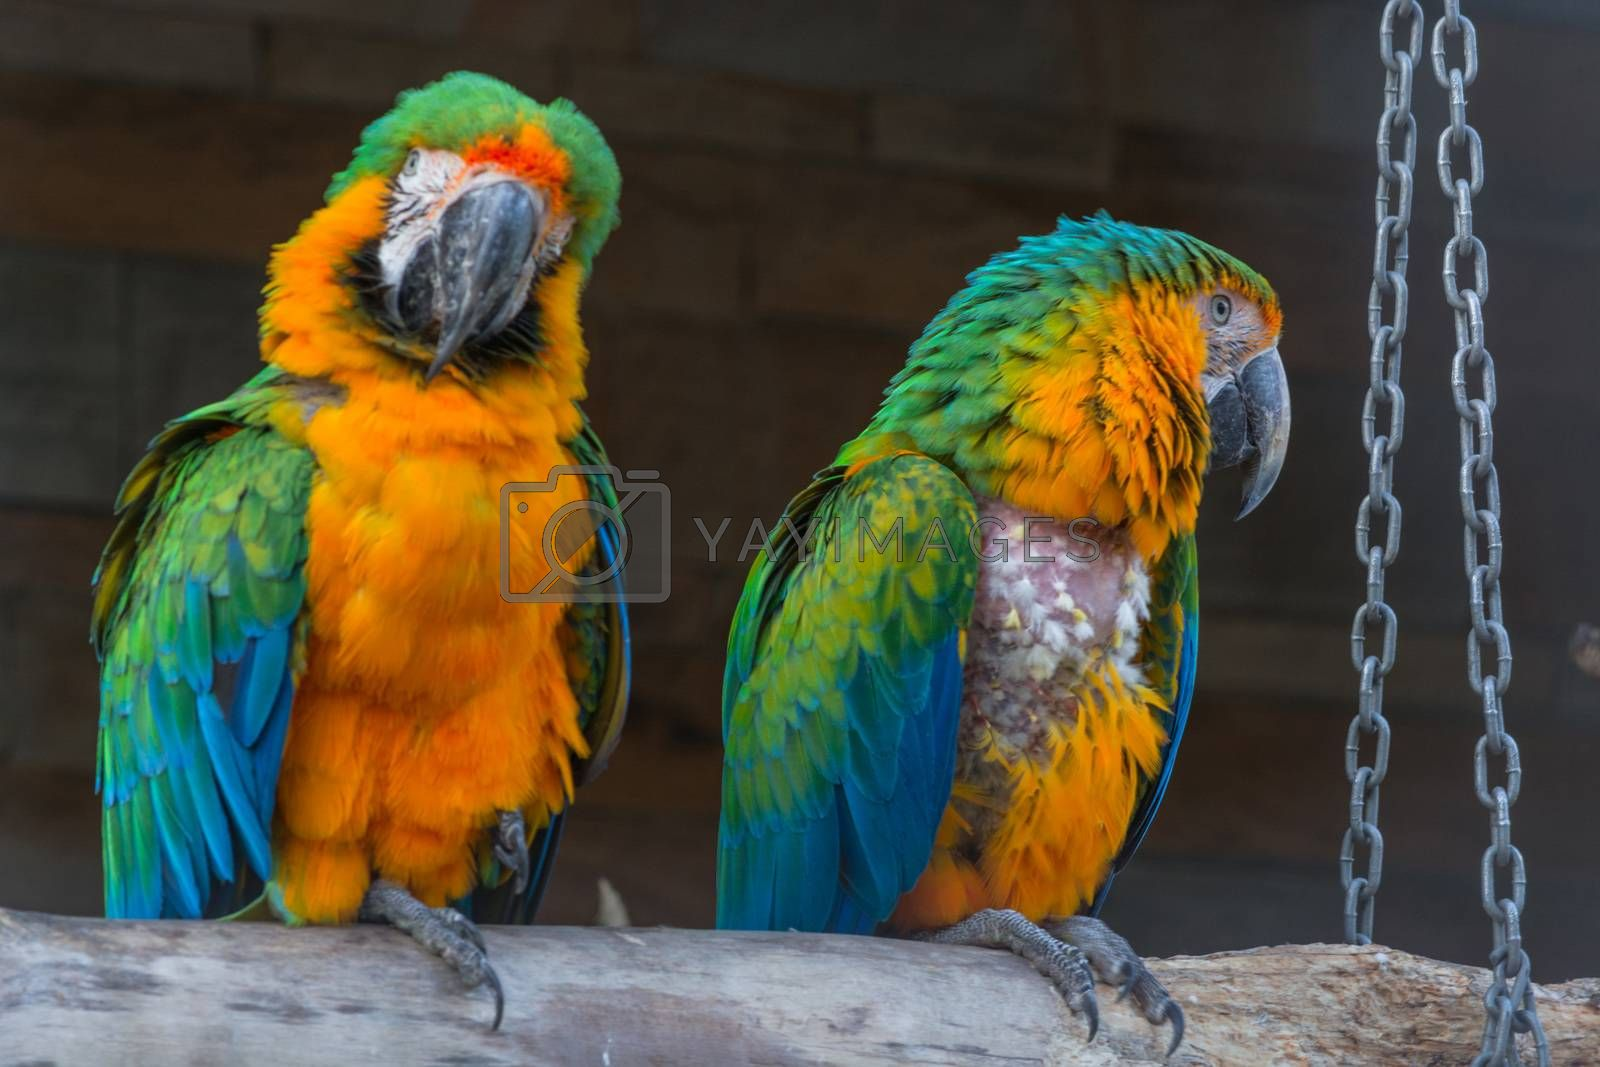 Two Beautiful colorful macaw parrots, side view.